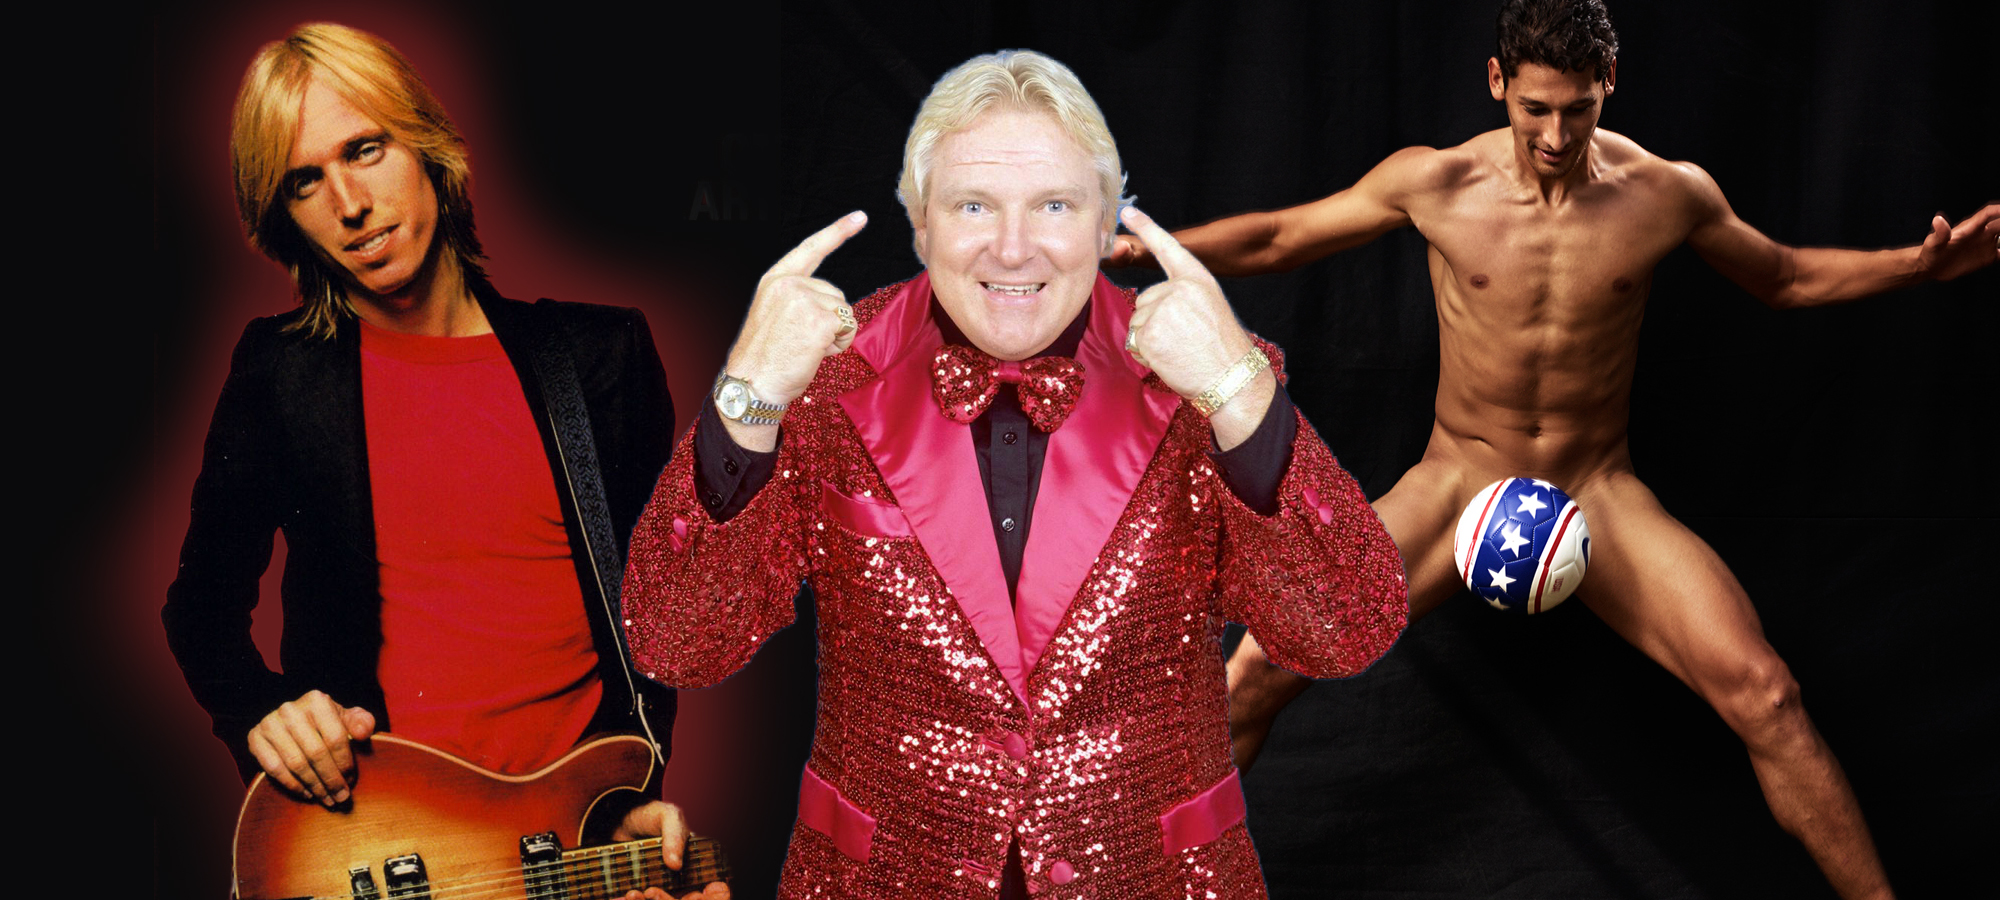 bobby heenan, the brain, tom petty, omar gonzalez, us soccer, usmnt, podcast